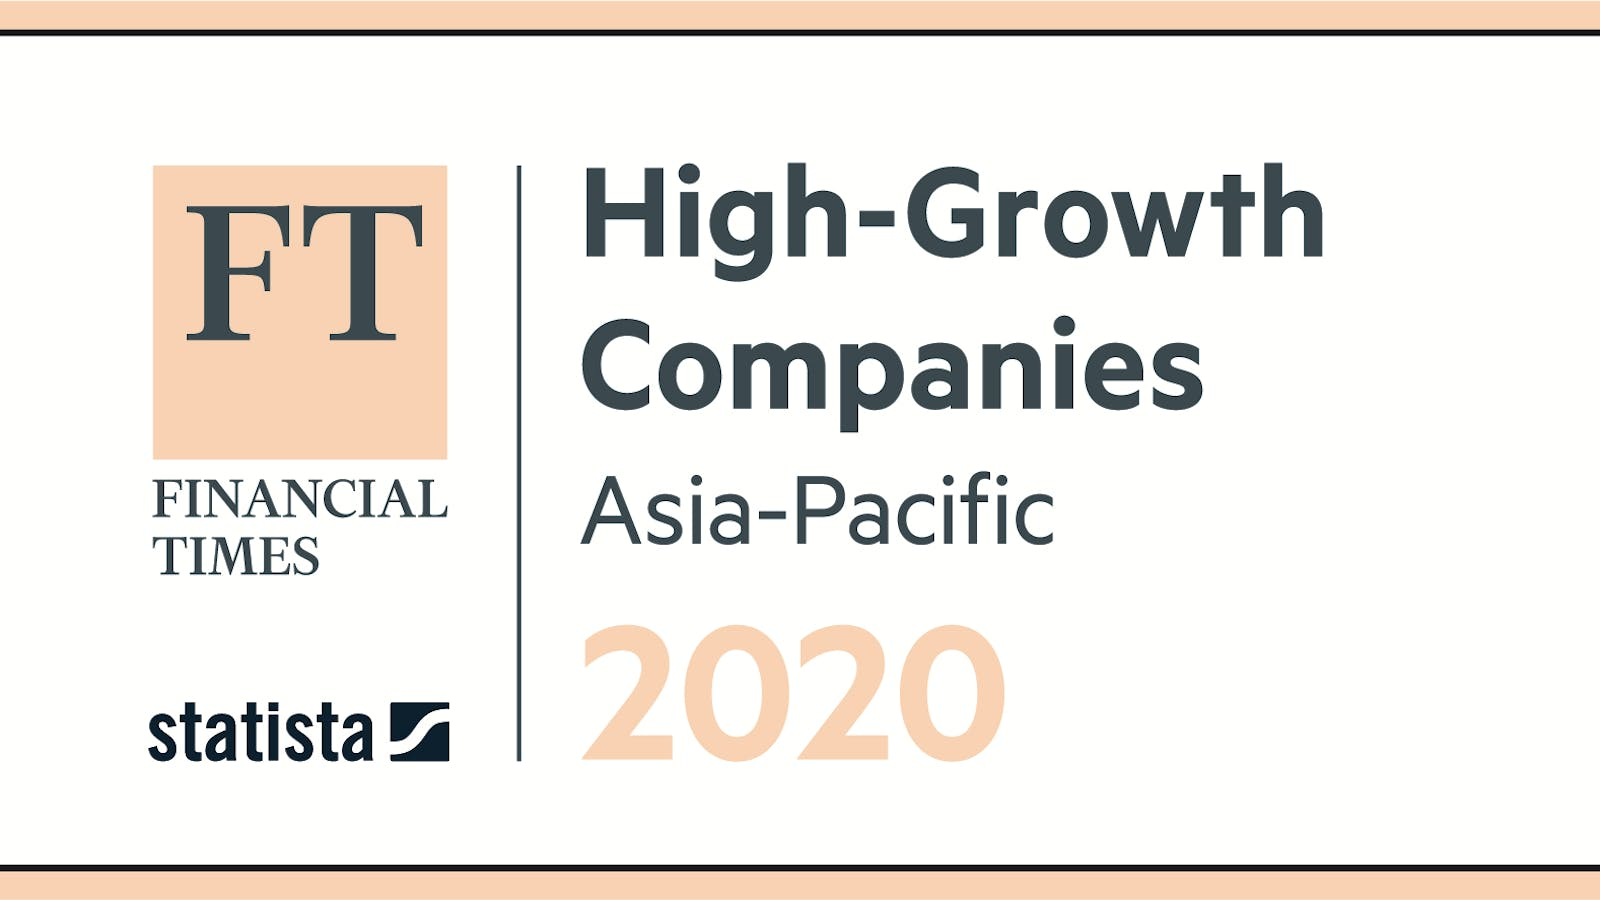 Asia-Pacific High-Growth Companies